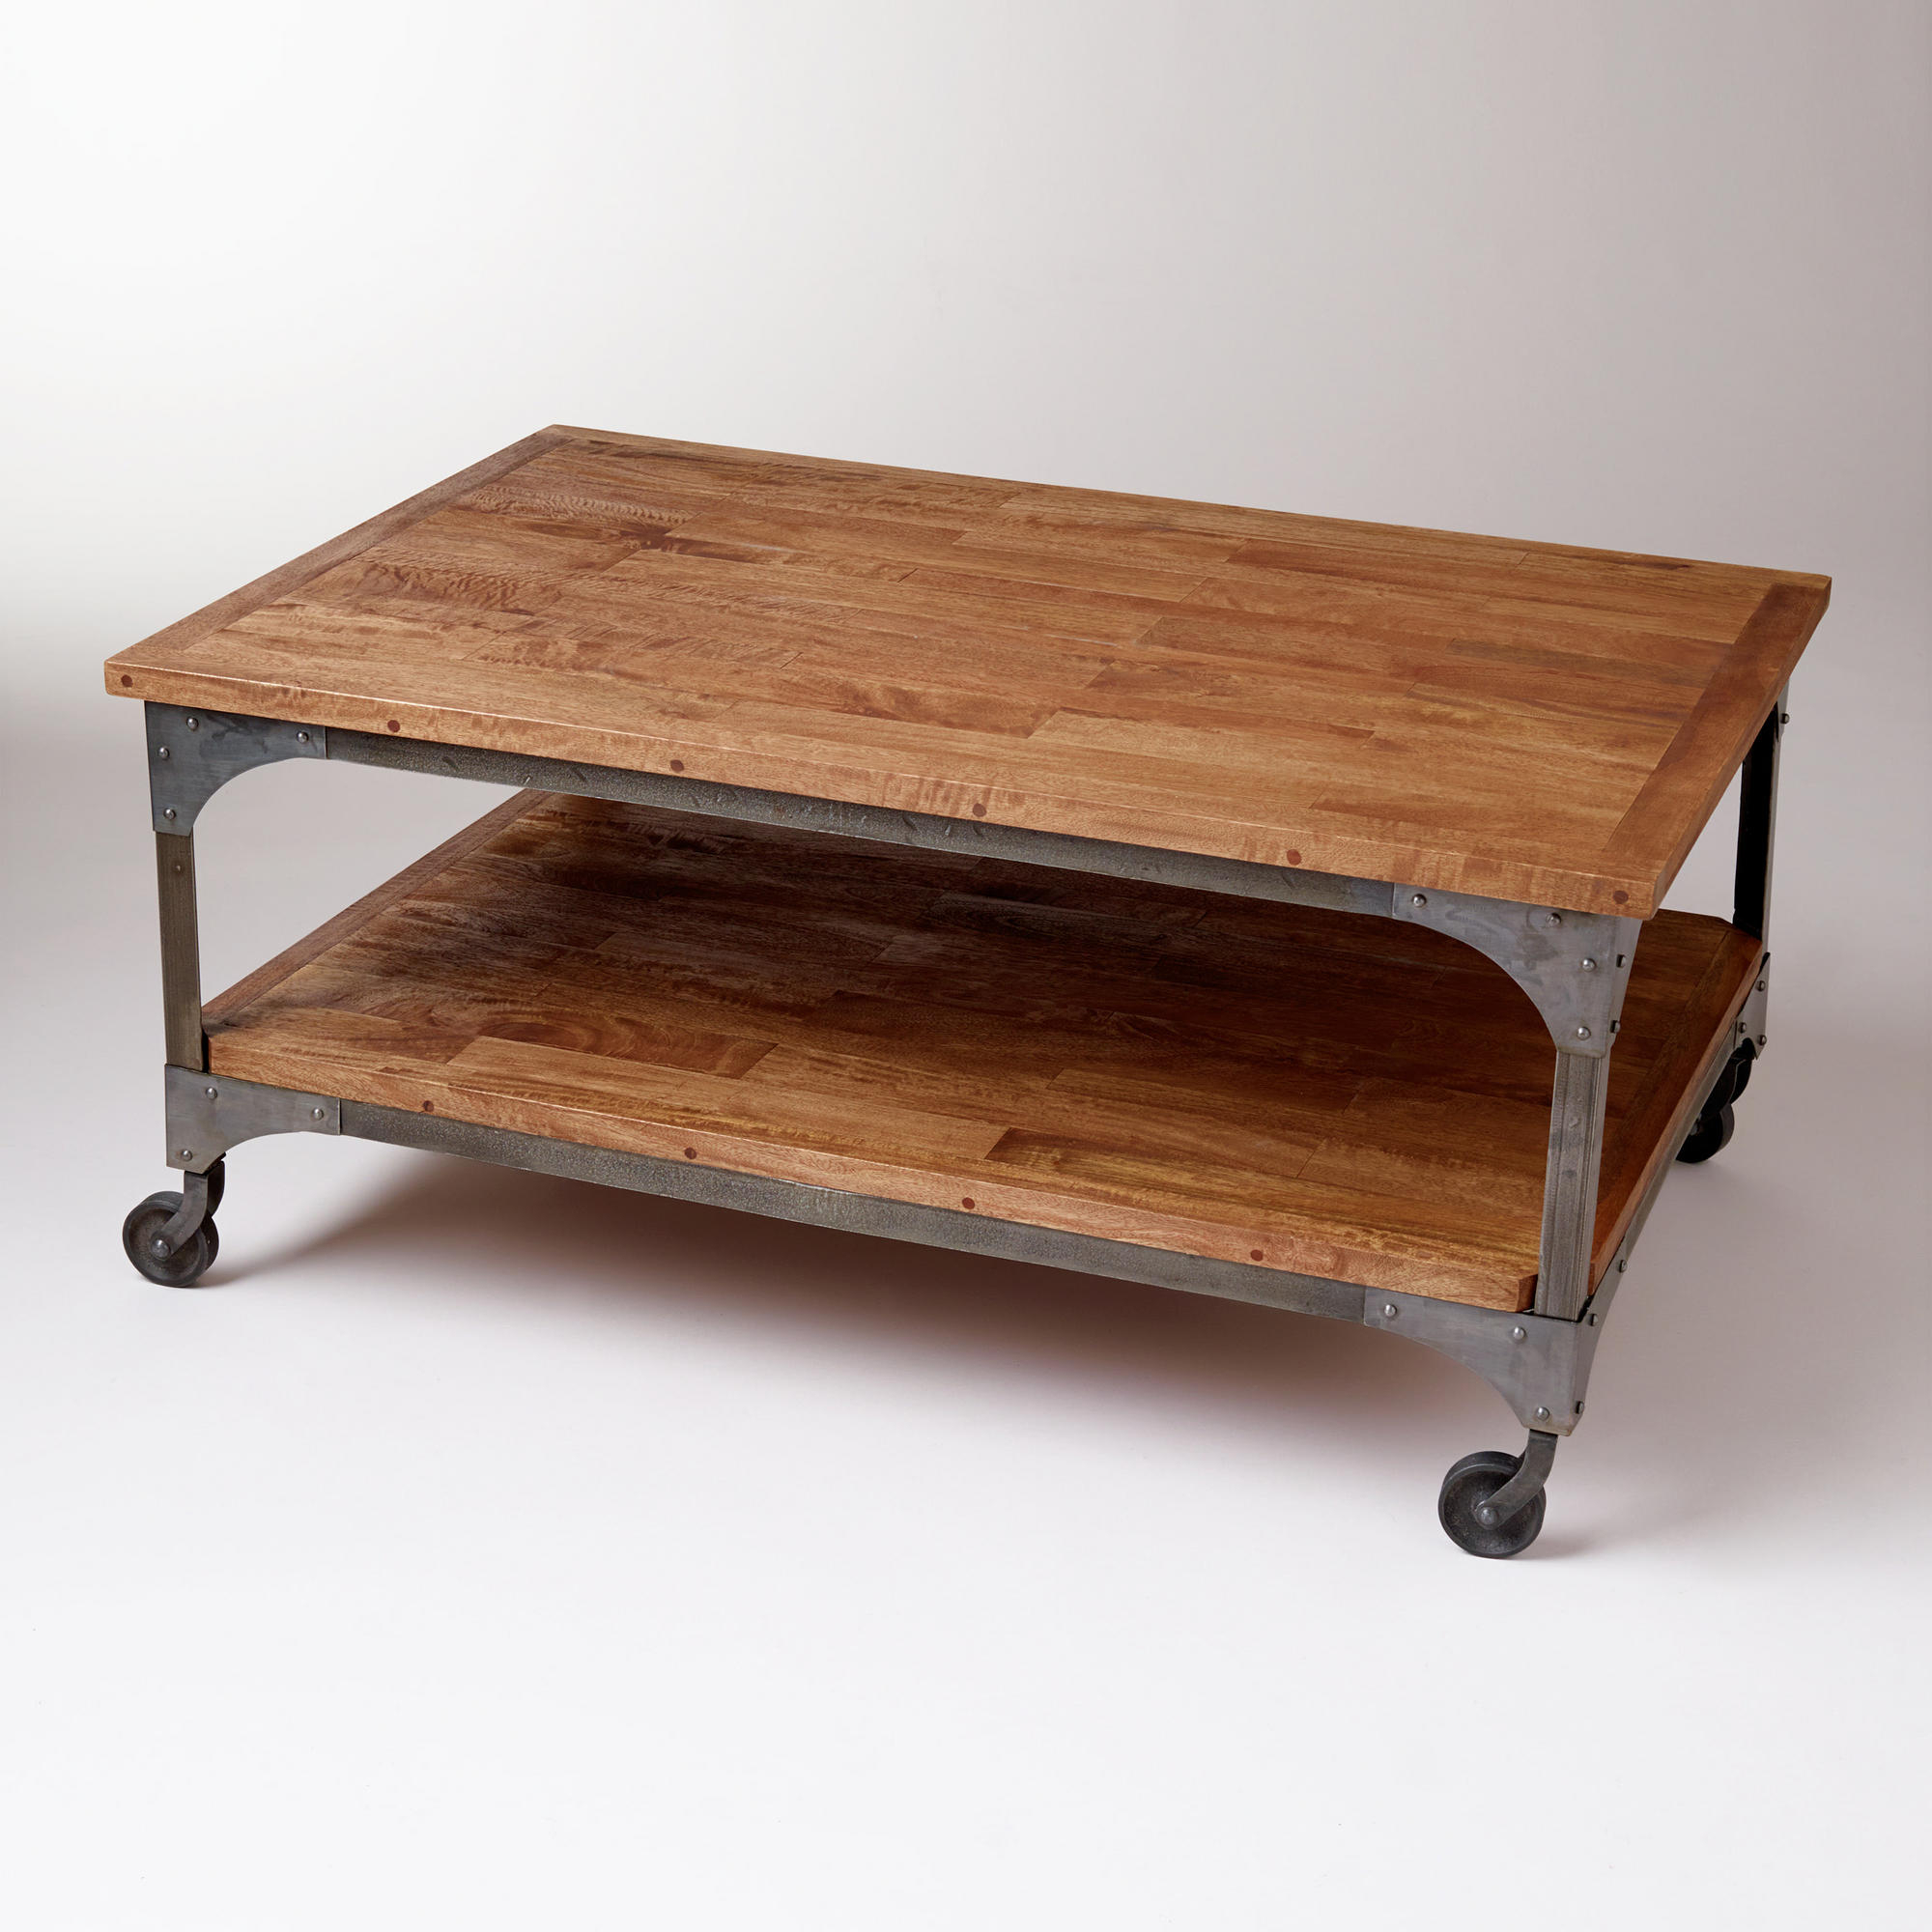 Natural Wheel Coffee Tables For Well Known Coffee Table: Wonderful Cheap Wood Coffee Table Small Coffee Table (View 8 of 20)